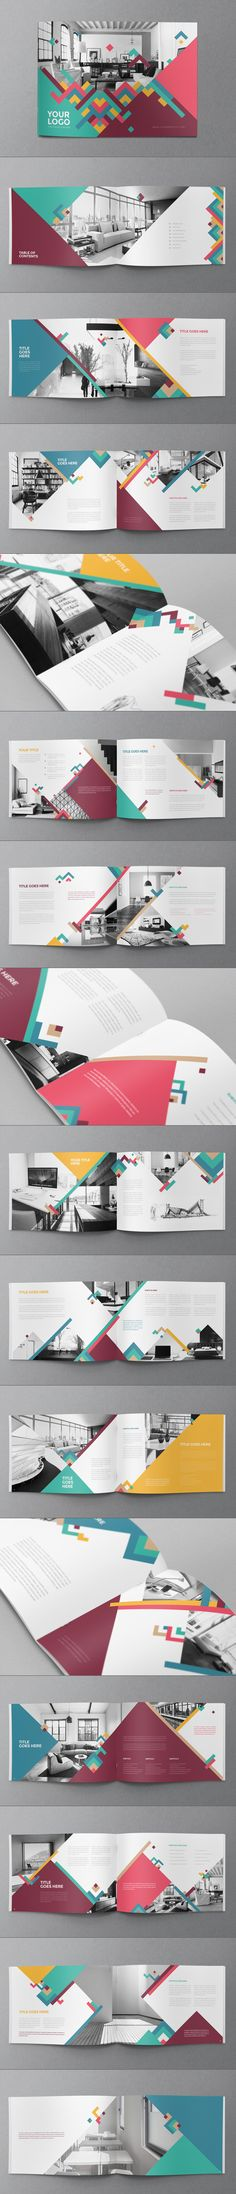 Colorful Pattern Brochure 2 by Abra Design, via Behance #design